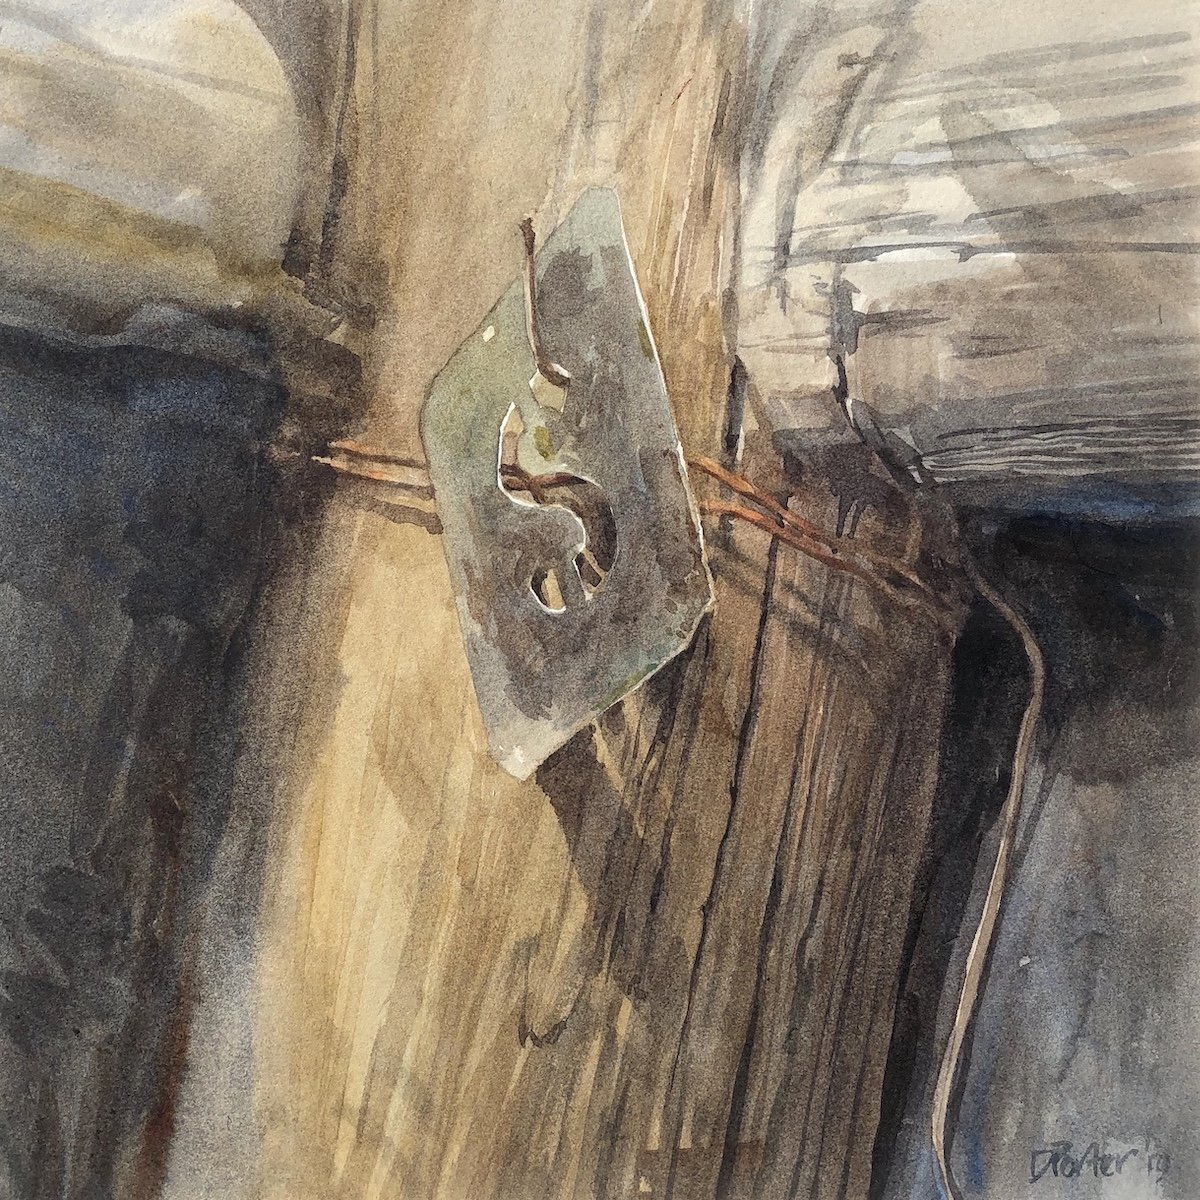 Watercolour painting by Christine Porter showing a woolstencil handing from a corner timber post. The roof is gone, so there's sunlight letting the S of the stencil case a shadow onto the post.